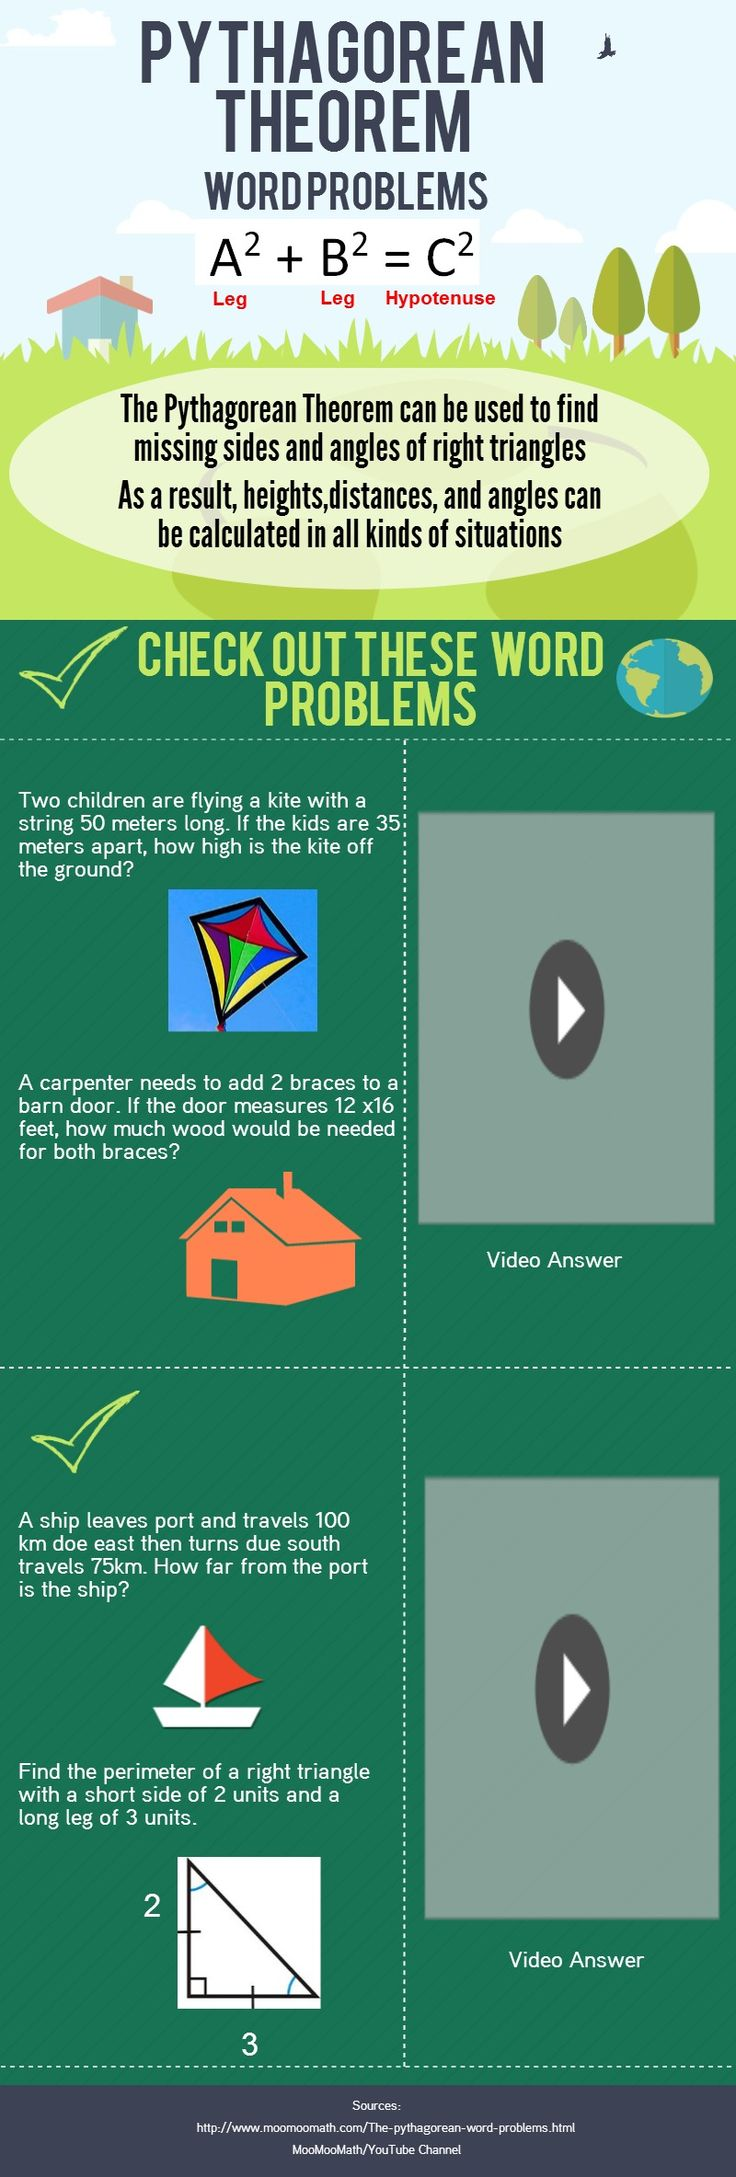 Pythagorean word problems | Infographic